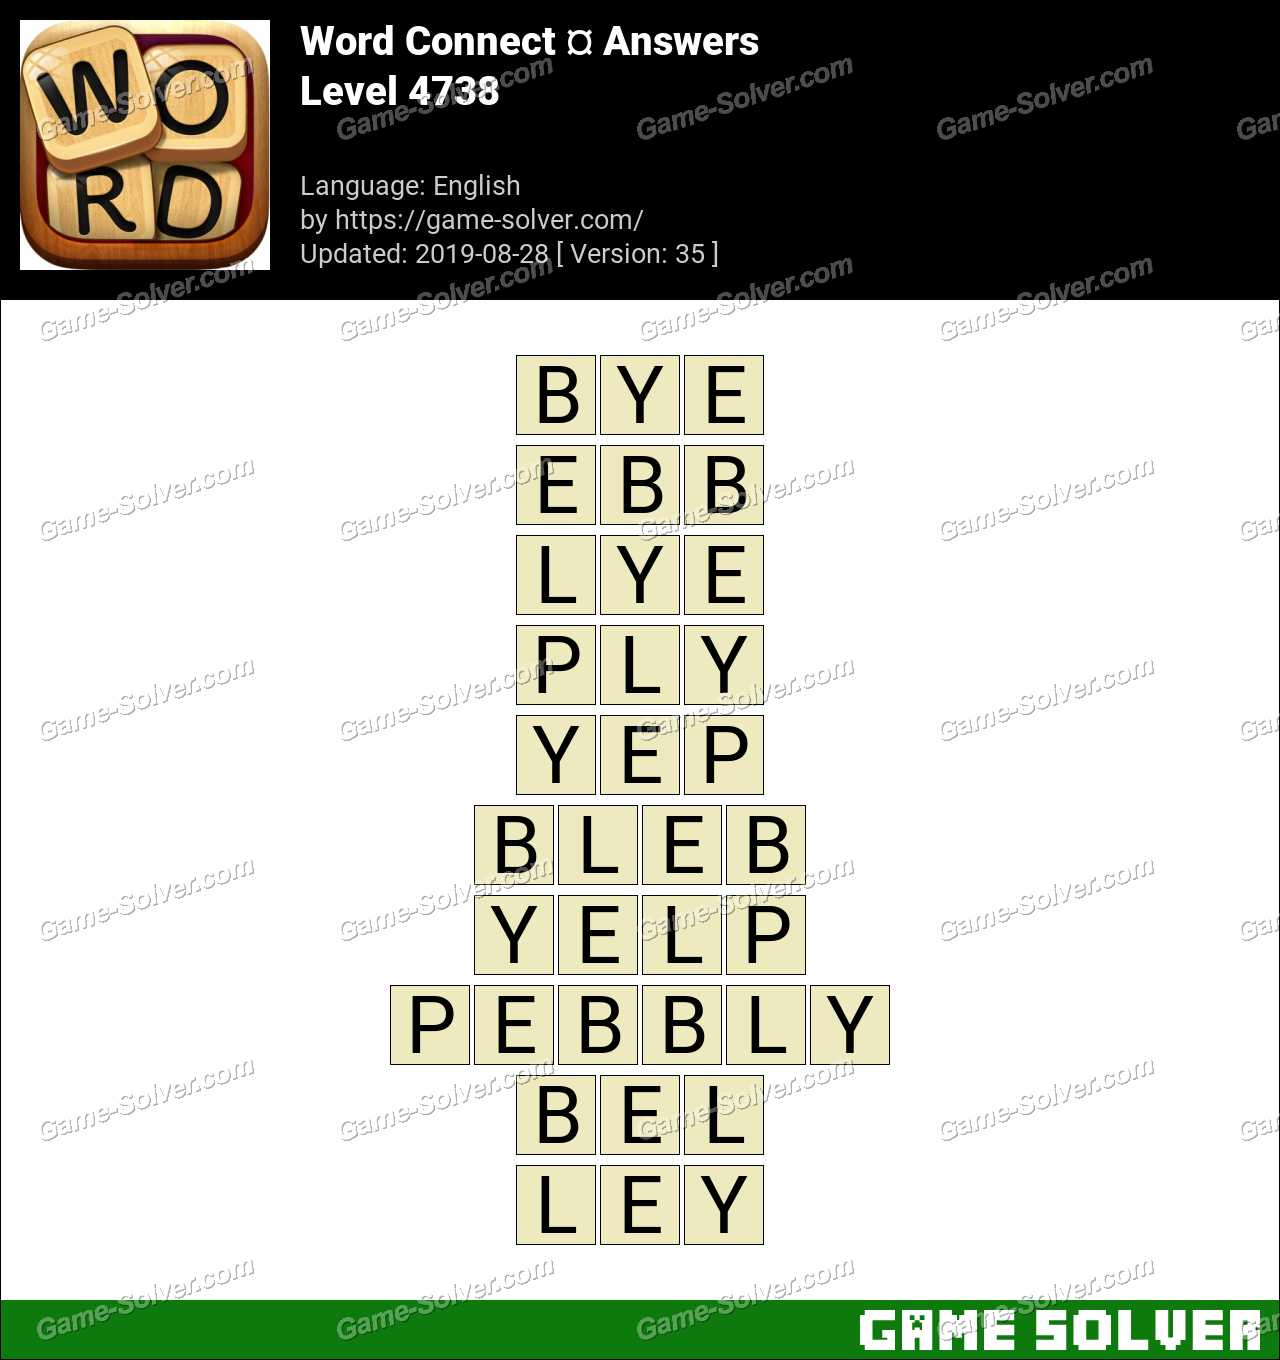 Word Connect Level 4738 Answers